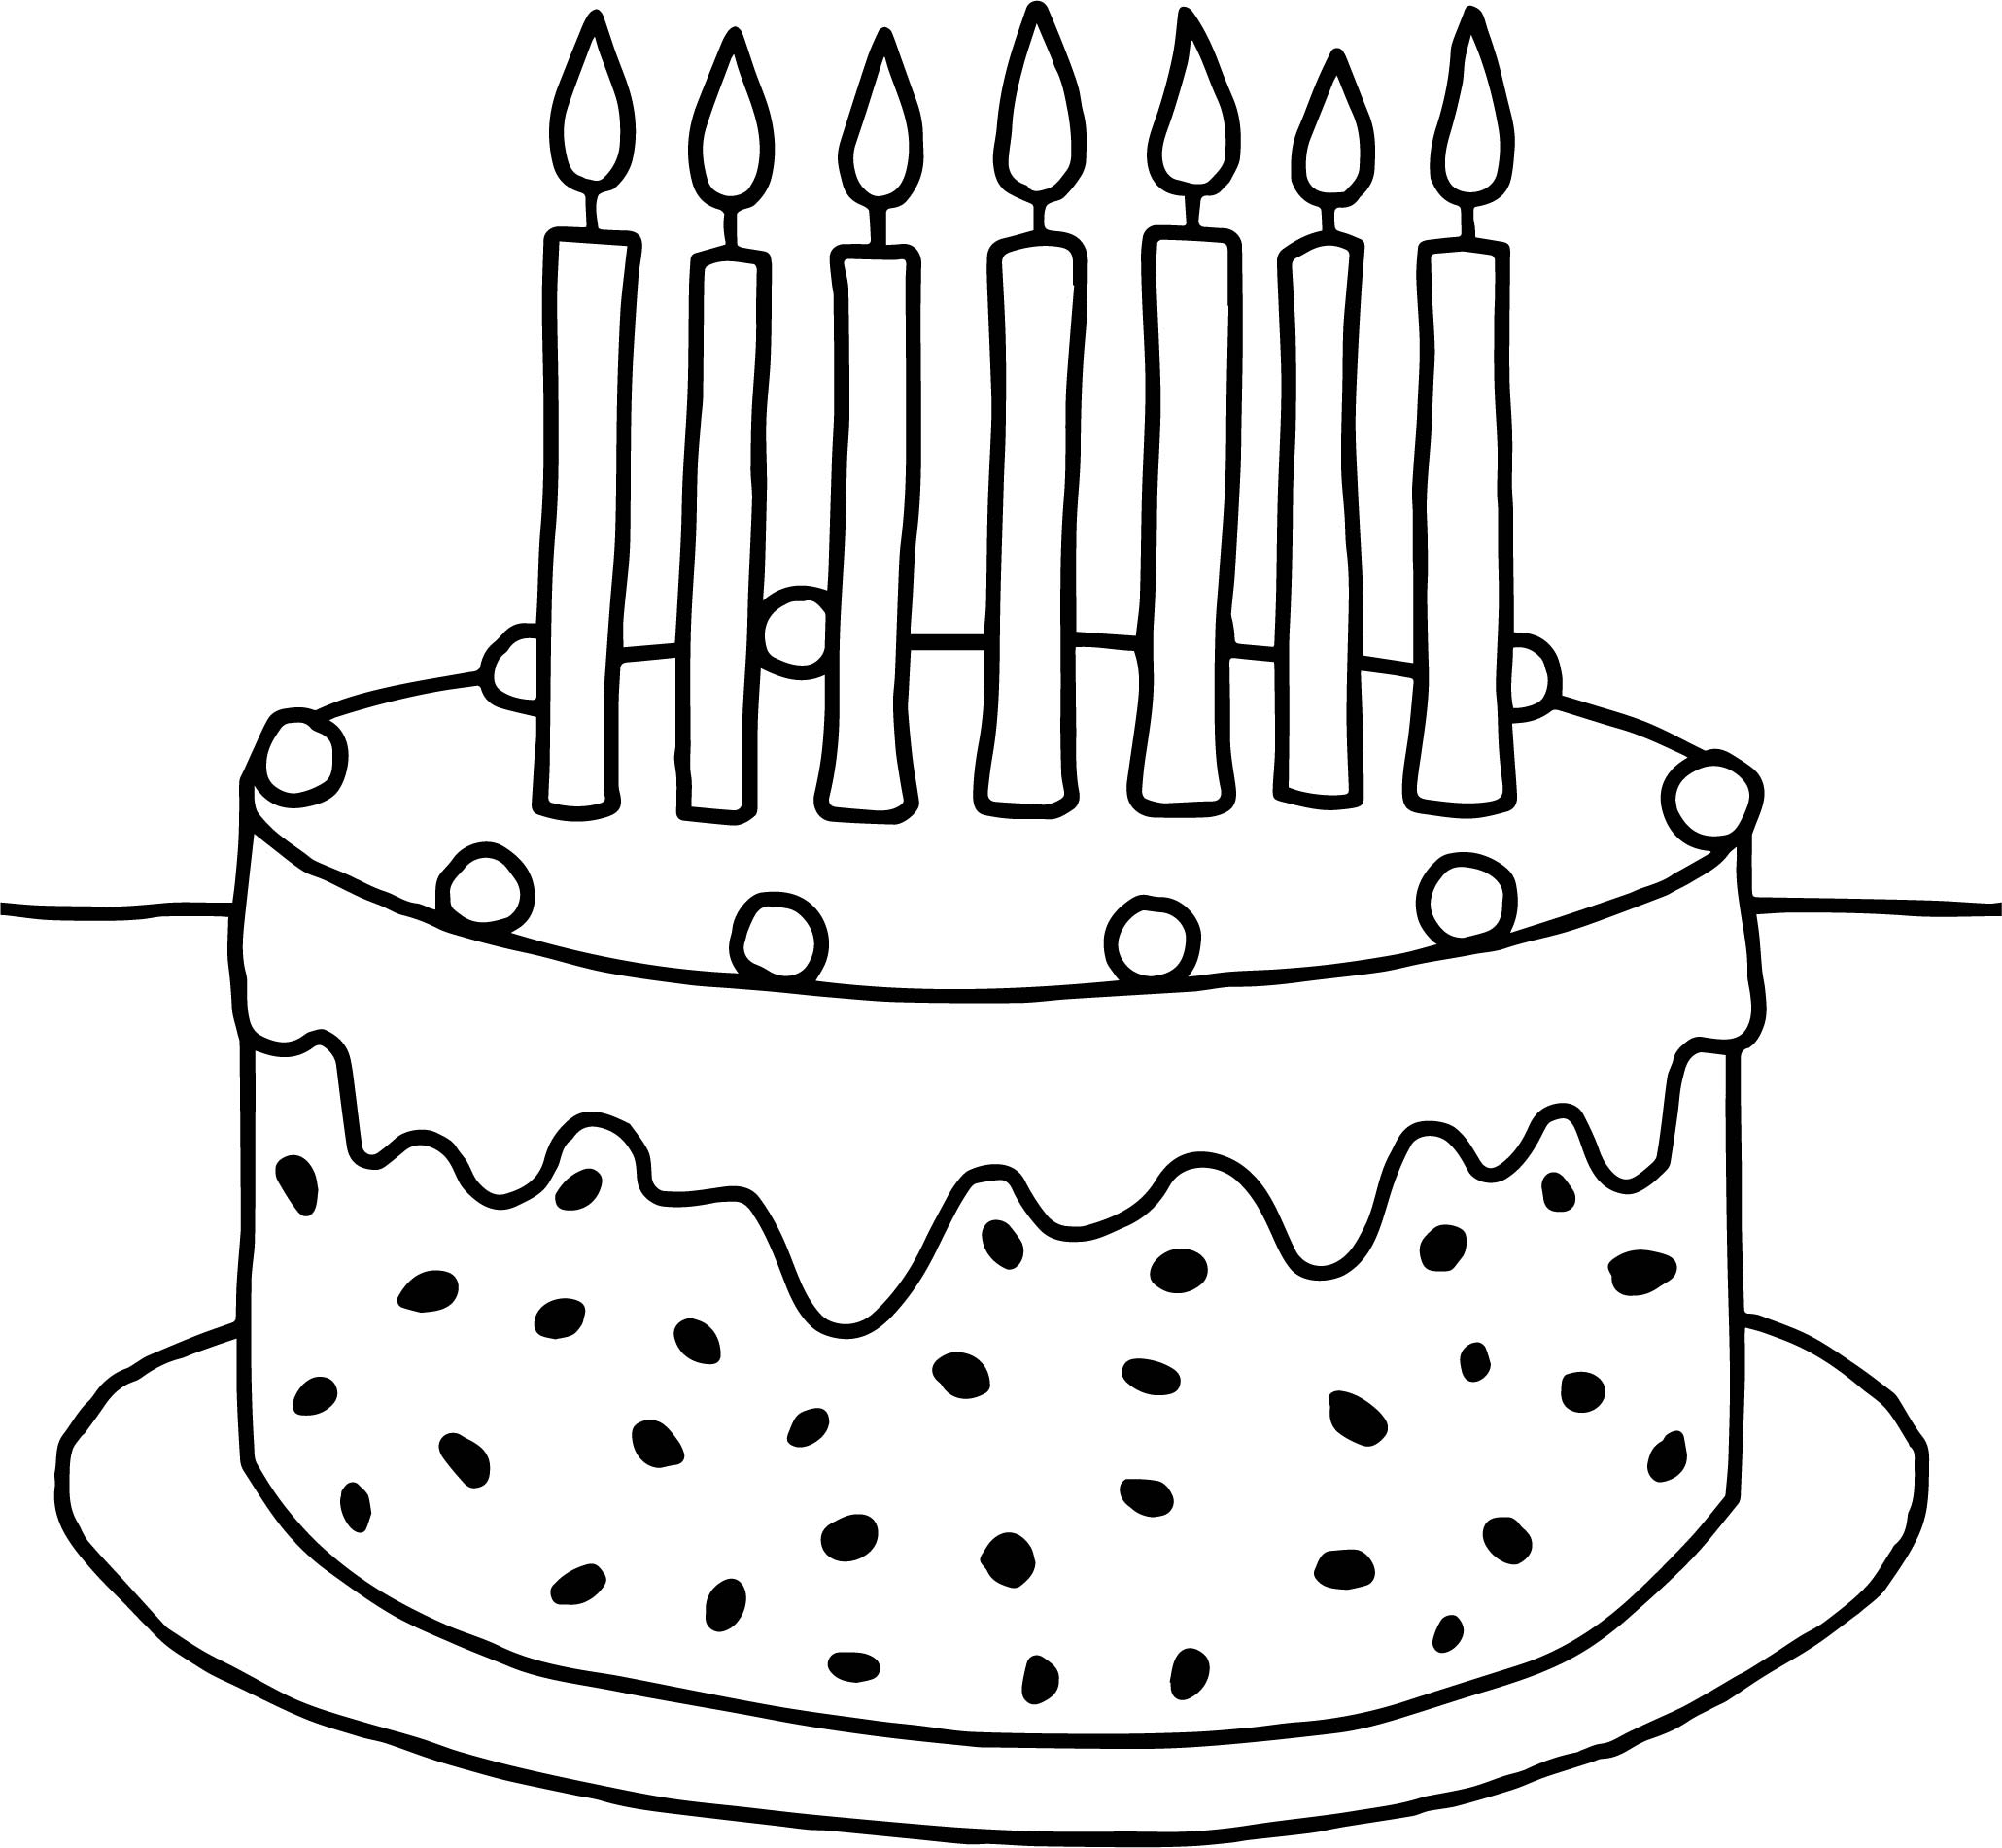 Coloring Printables For Kindergarten : Preschool birthday cake coloring pages wecoloringpage